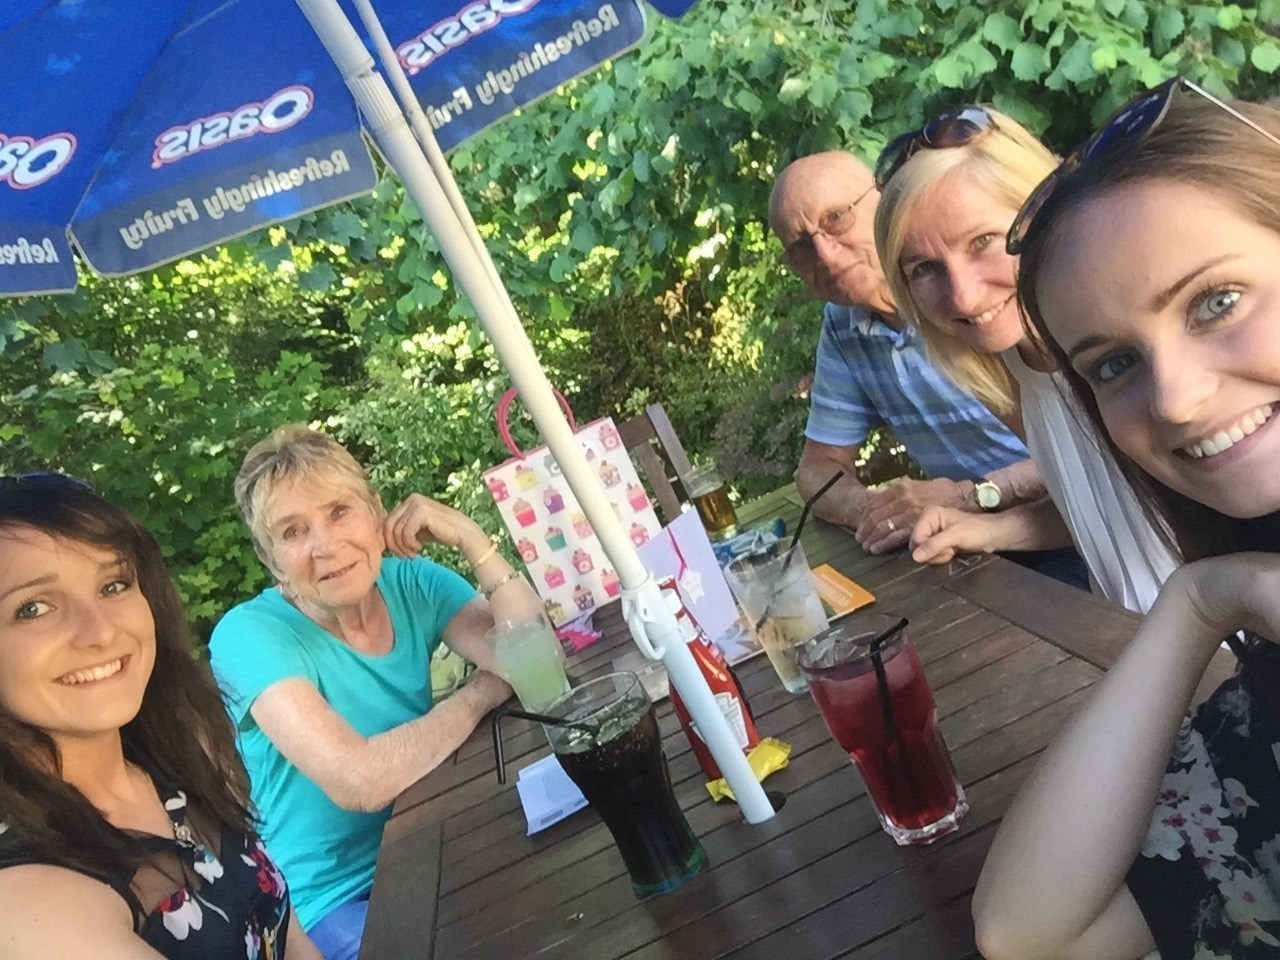 Nans birthday last year with her selfie stick!